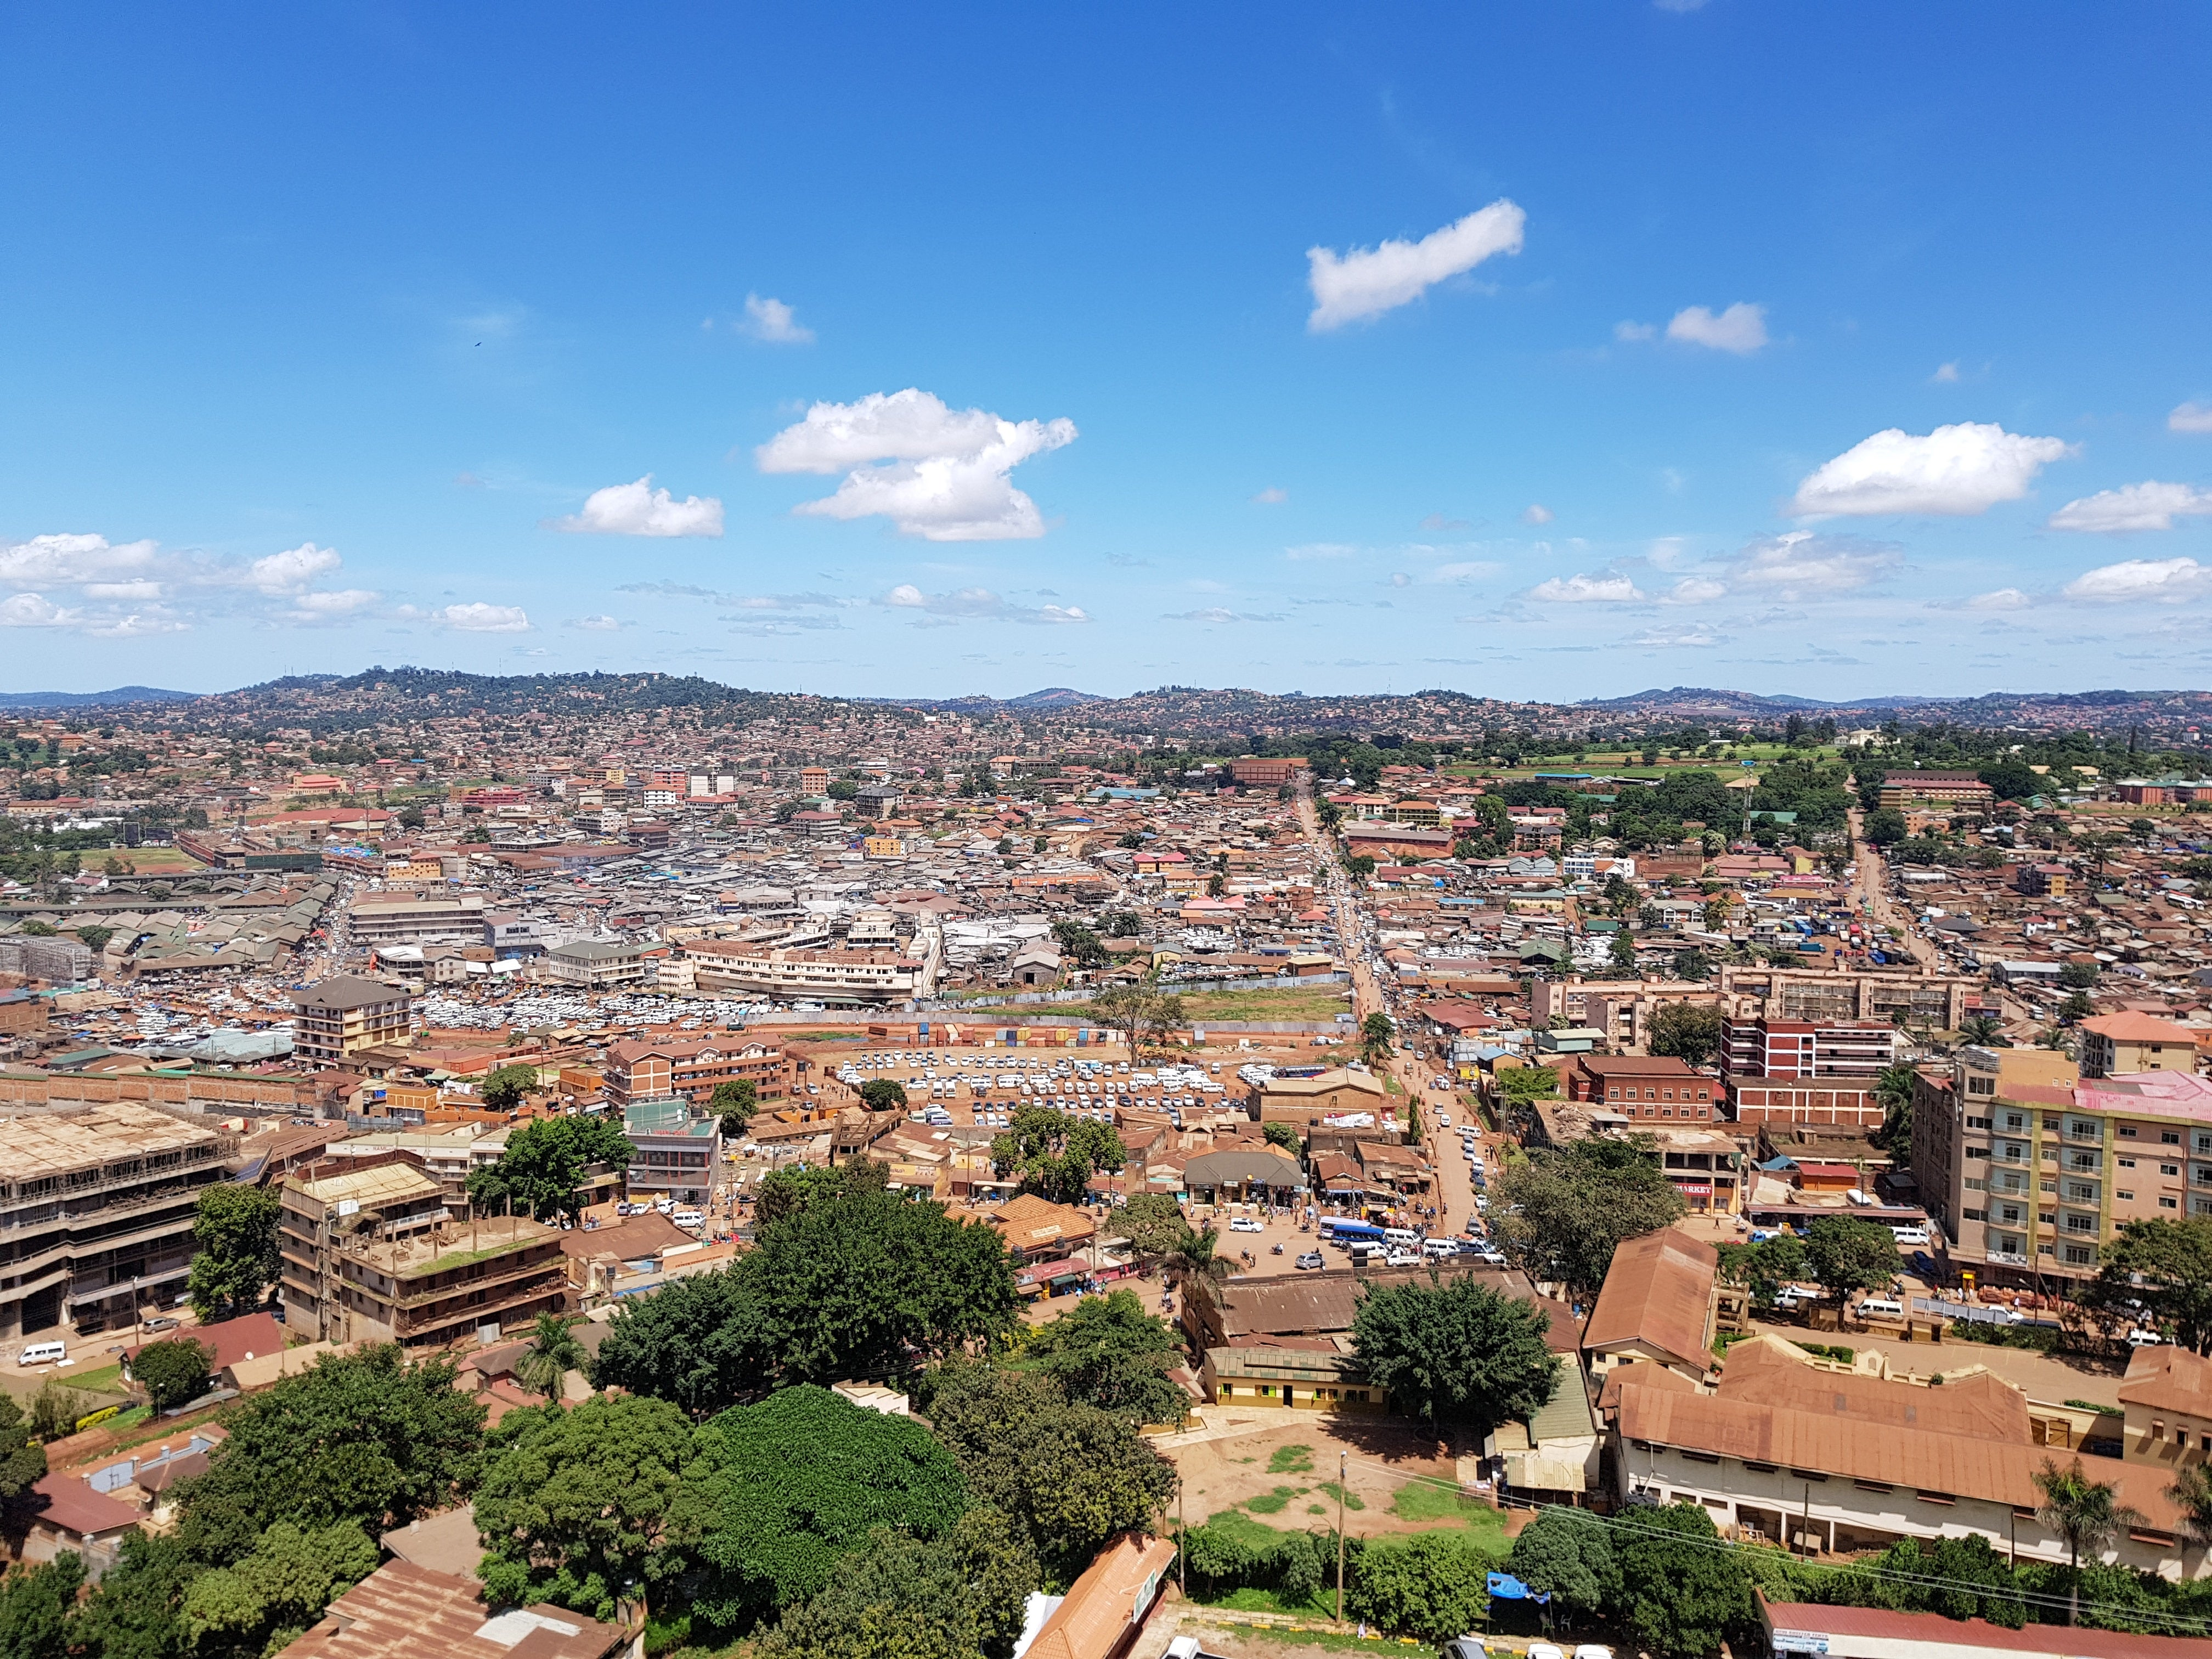 Kampala city centre seen from above, with the hills in the distance